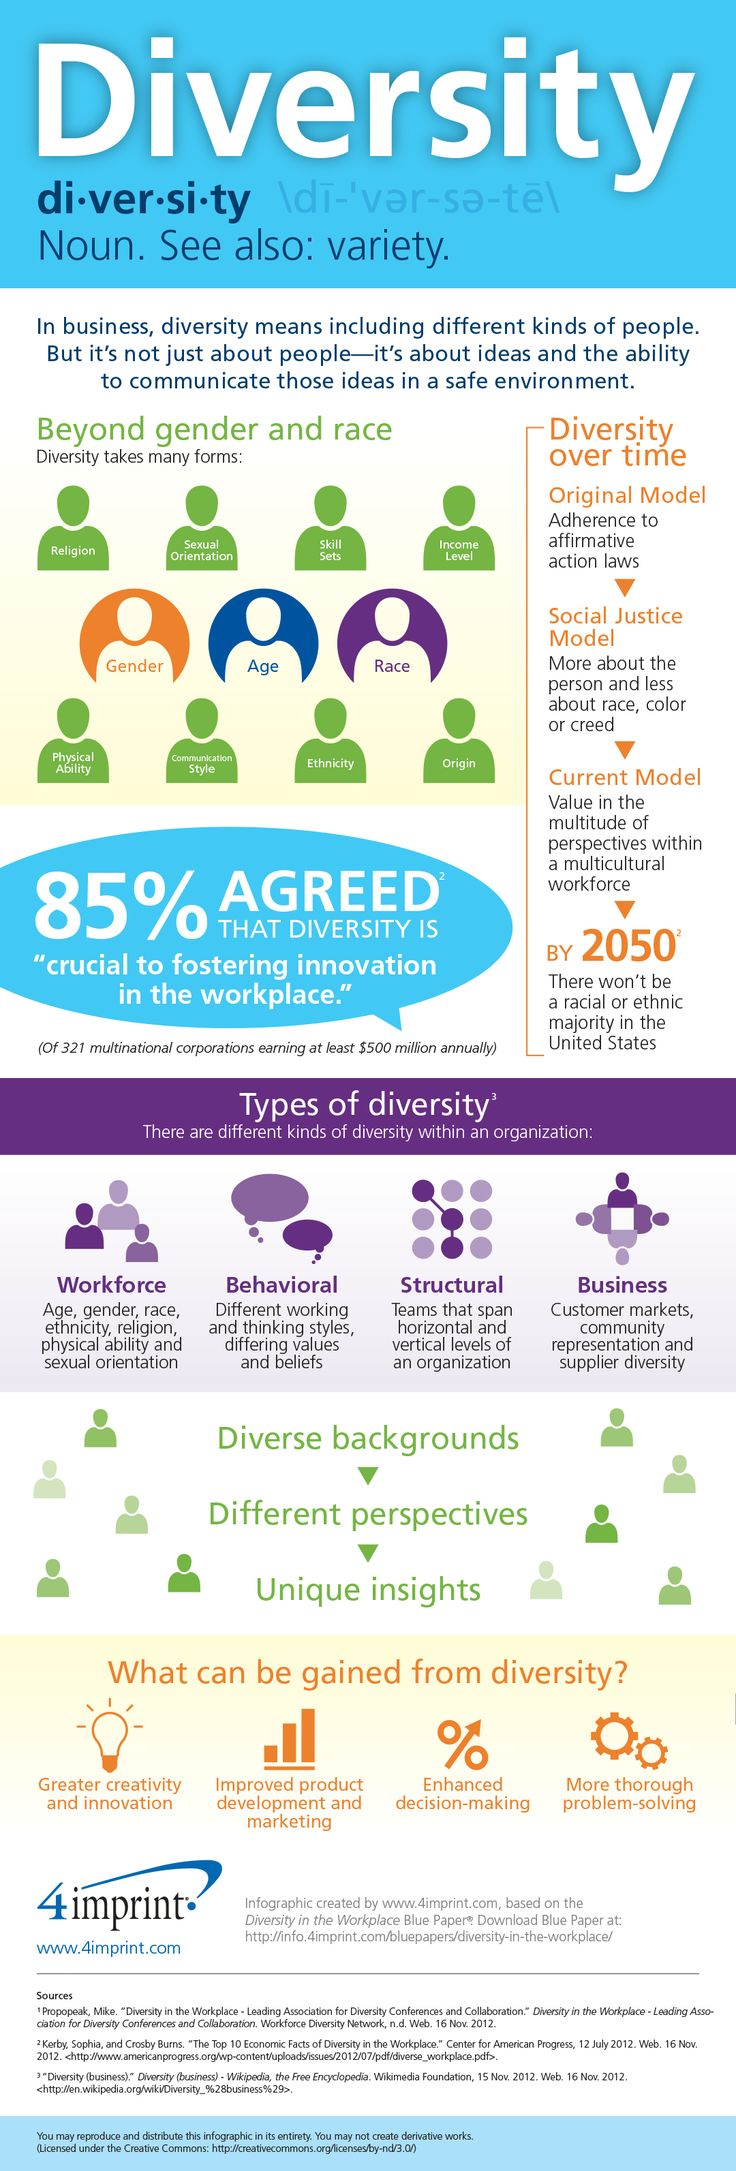 images about diversity in the workplace tips from diversity is about ideas the ability to communicate them in a safe environment